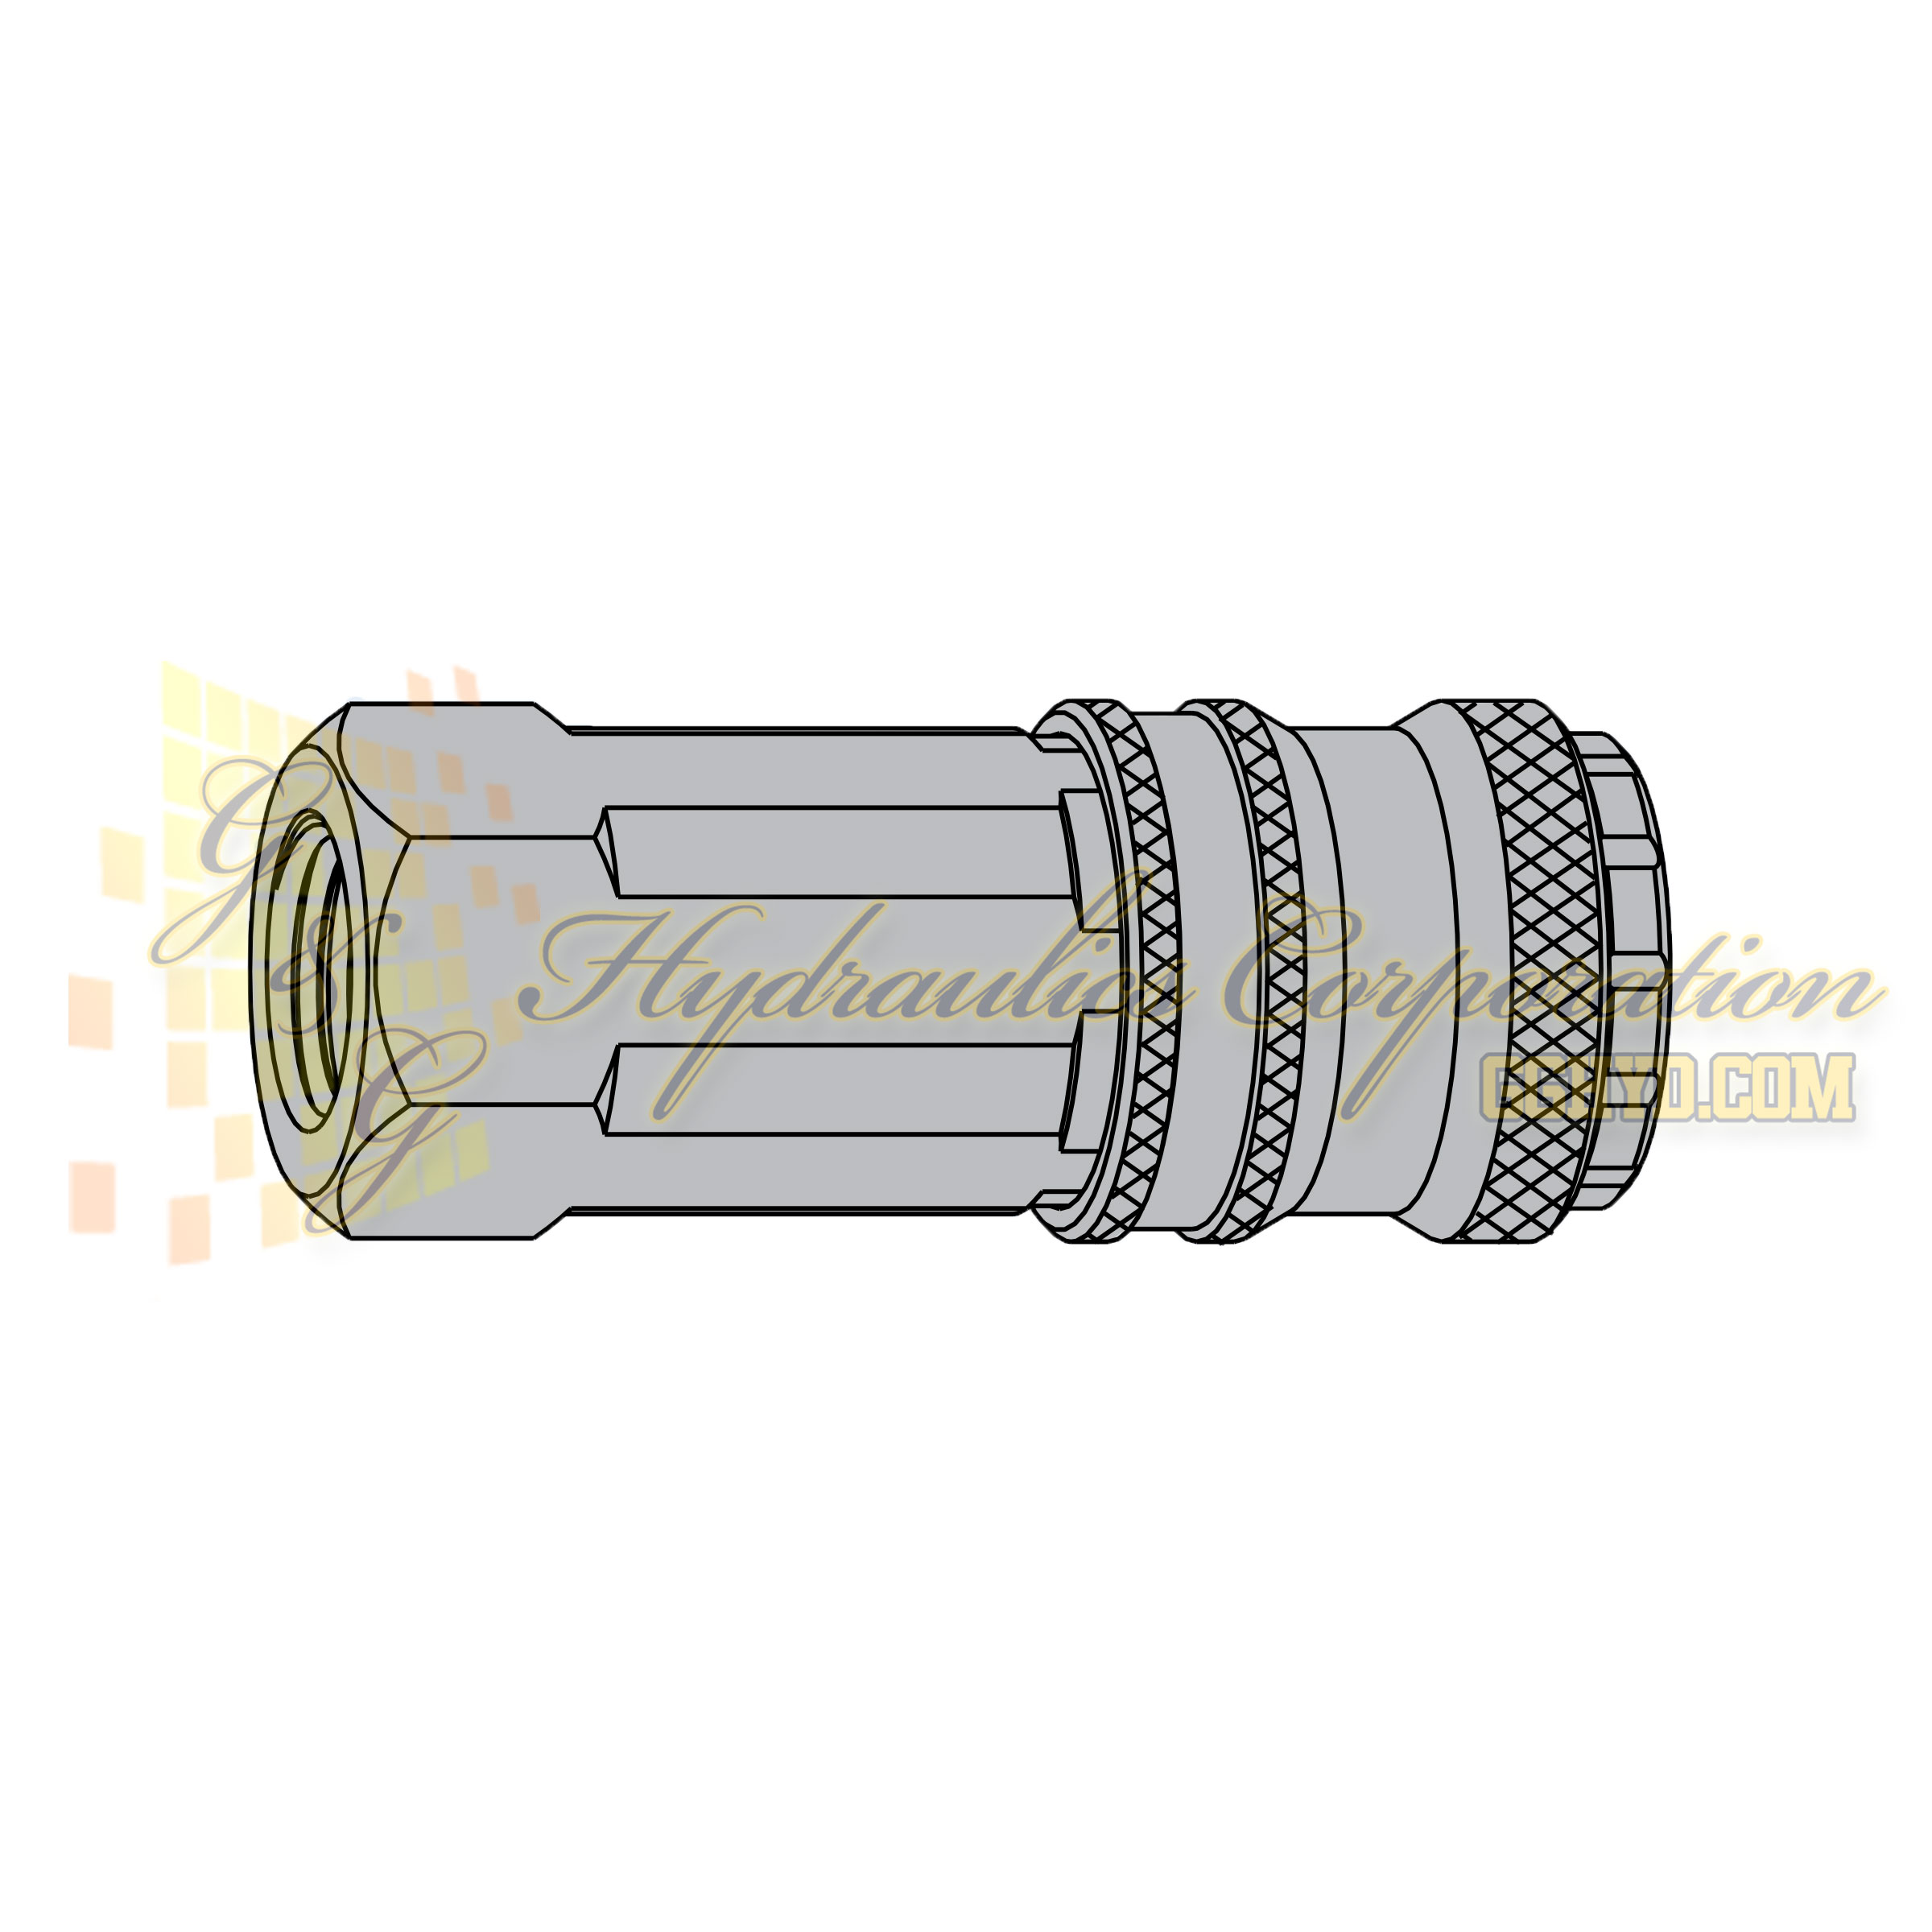 "10-310-2202 CEJN Quick Disconnect eSafe Vented Safety Coupler, 1/4"" BSPP Female Thread, 232 PSI (16 bar)"